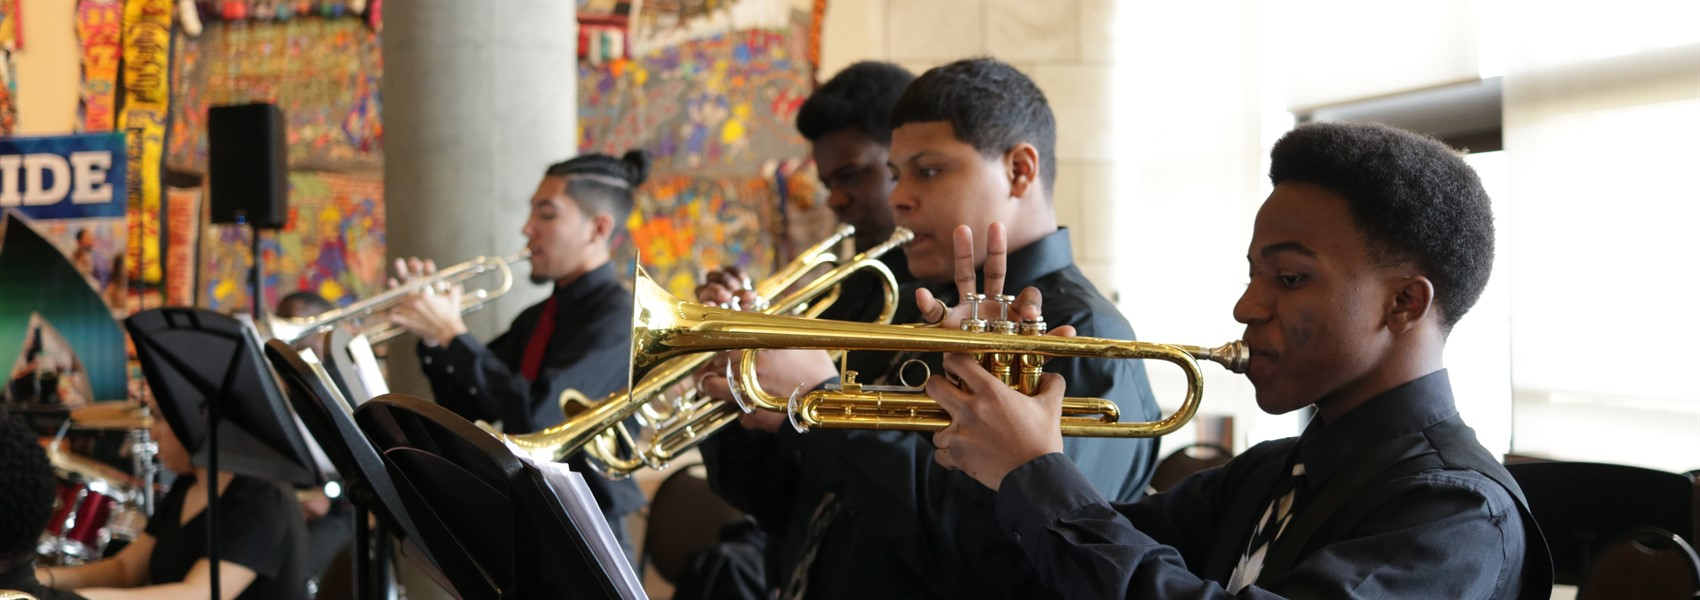 A Night of Freedom Jazz Band Performance